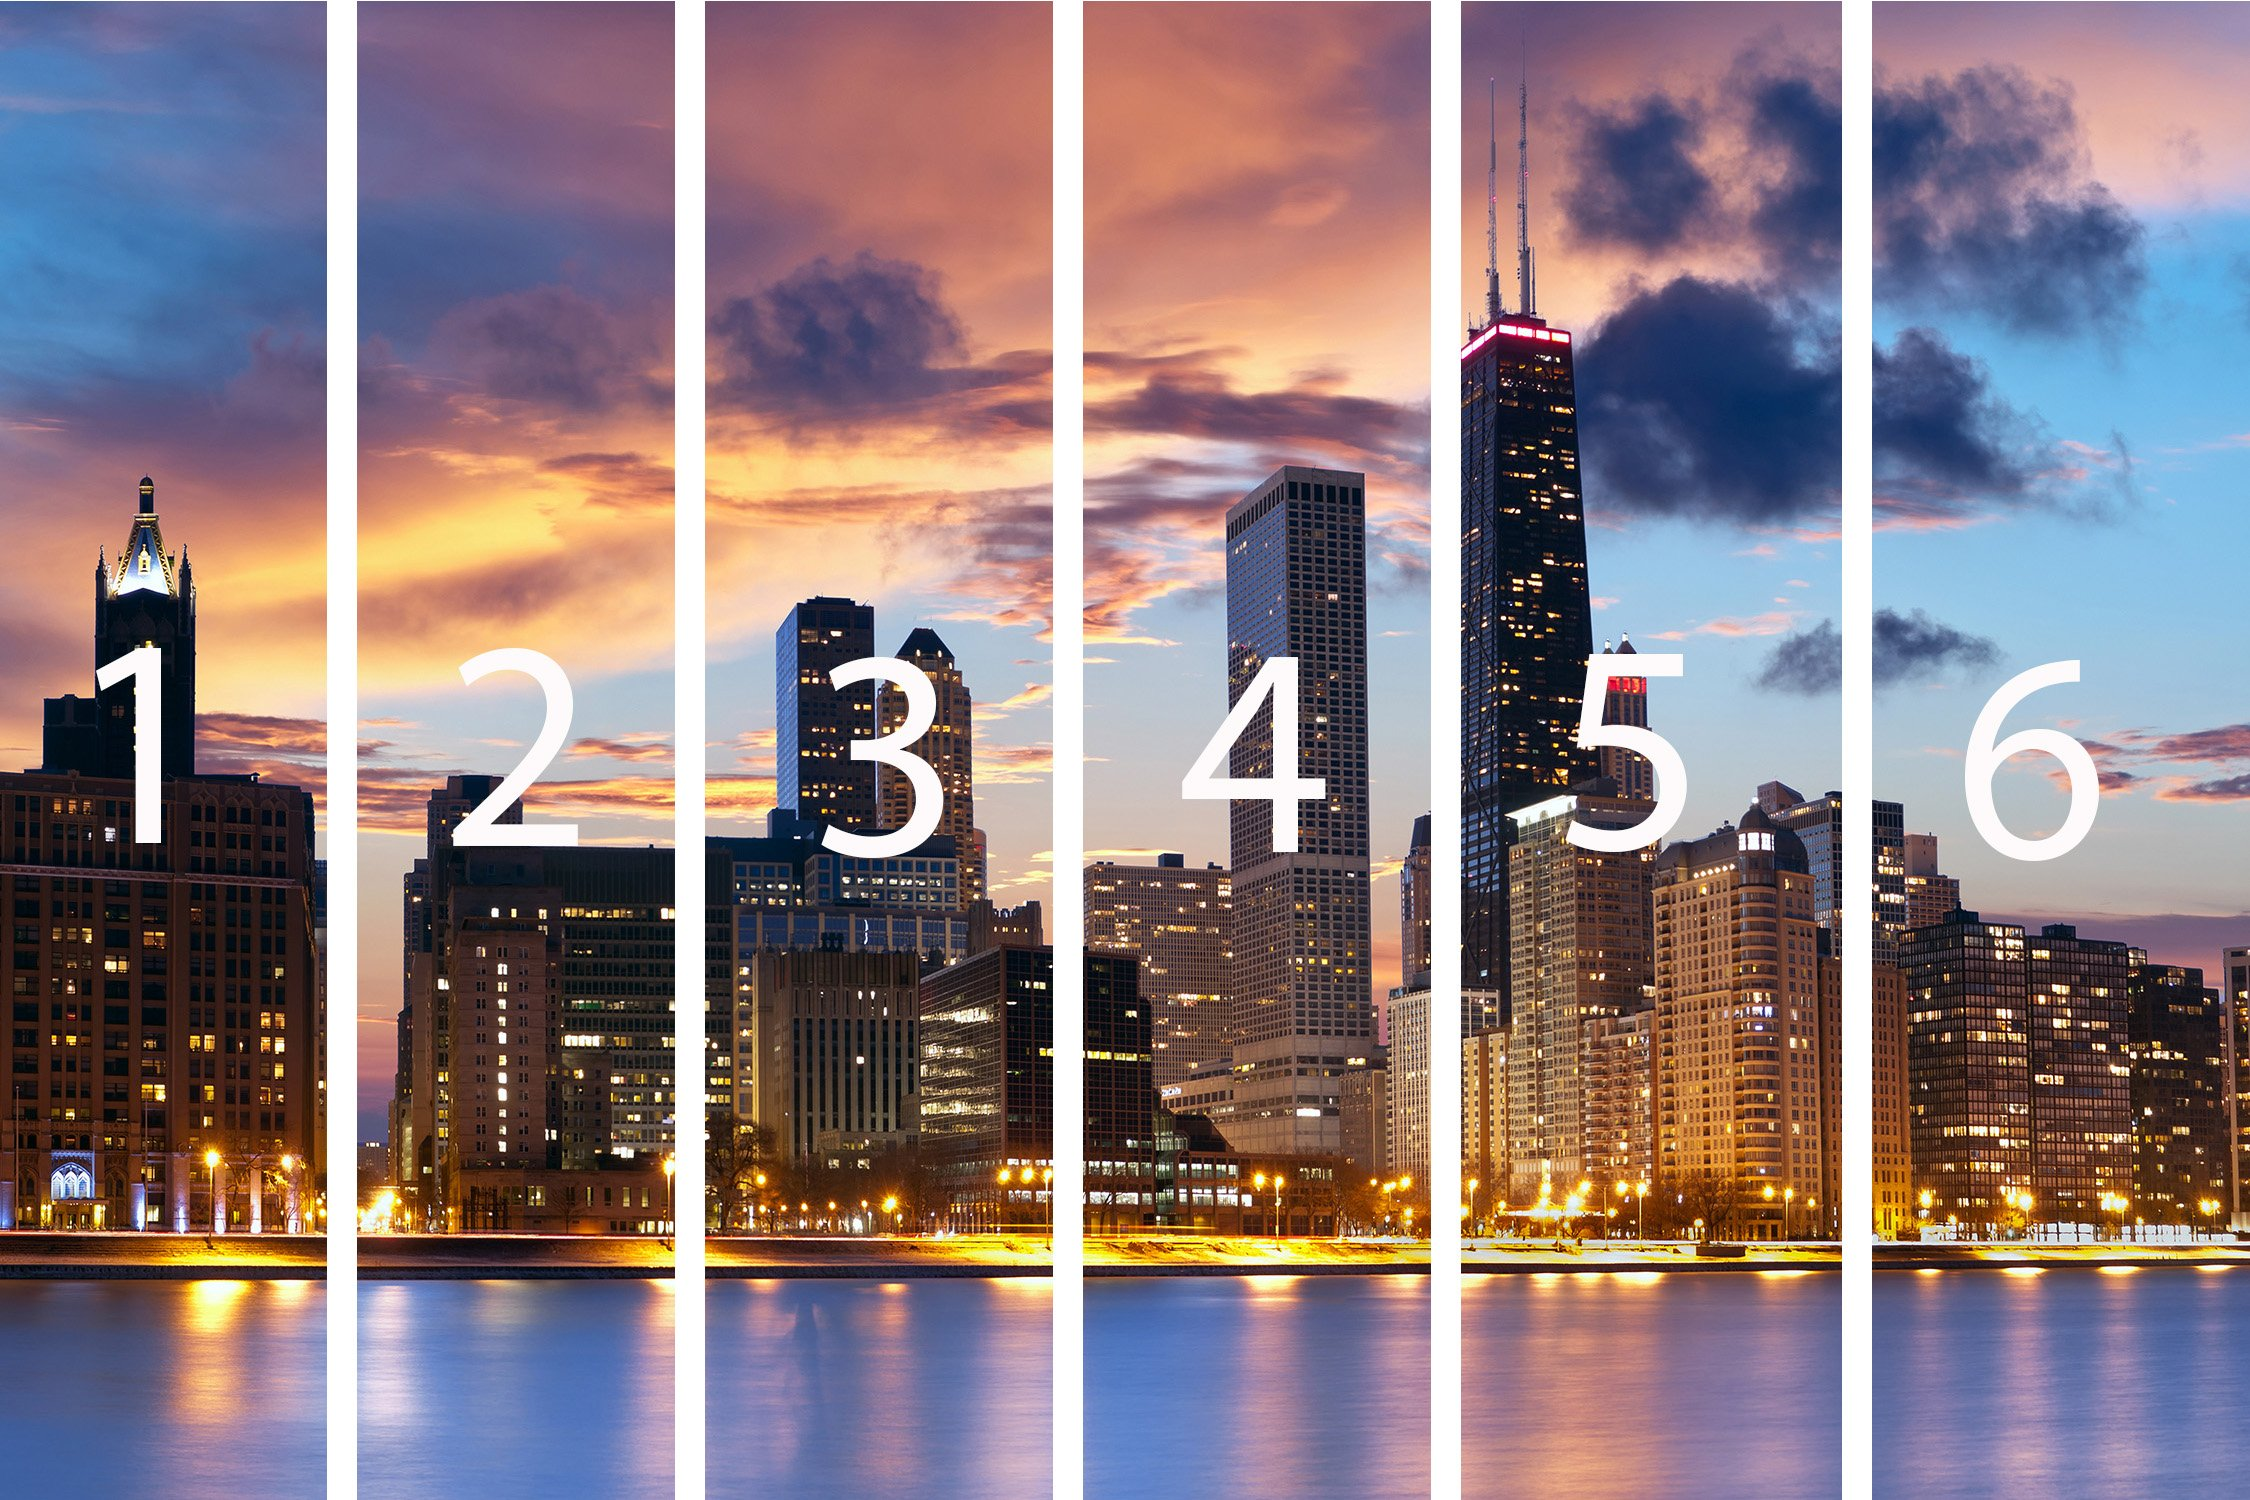 Photo Wall Mural Chicago Skyline Wall Art Decor Photo Wallpaper Poster Print by Premium Wall Murals (Image #3)